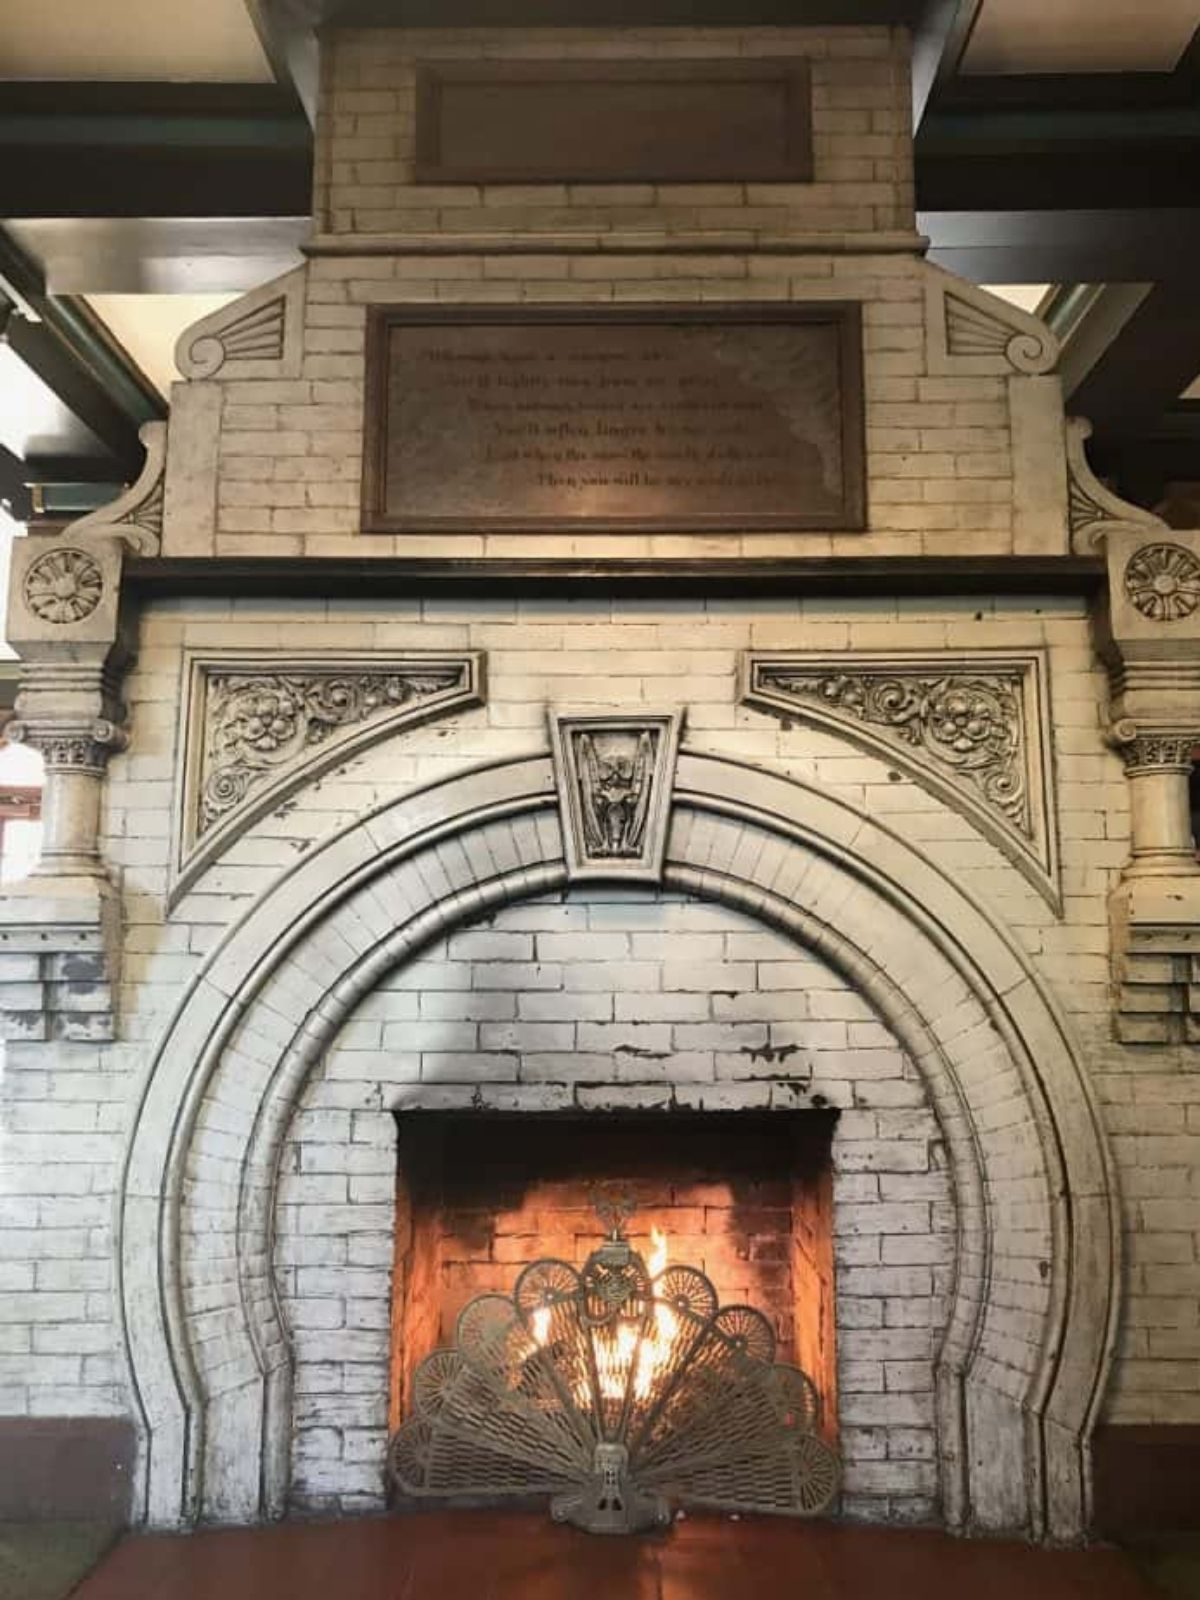 the antique original fireplace inside the lobby of the crescent hotel.